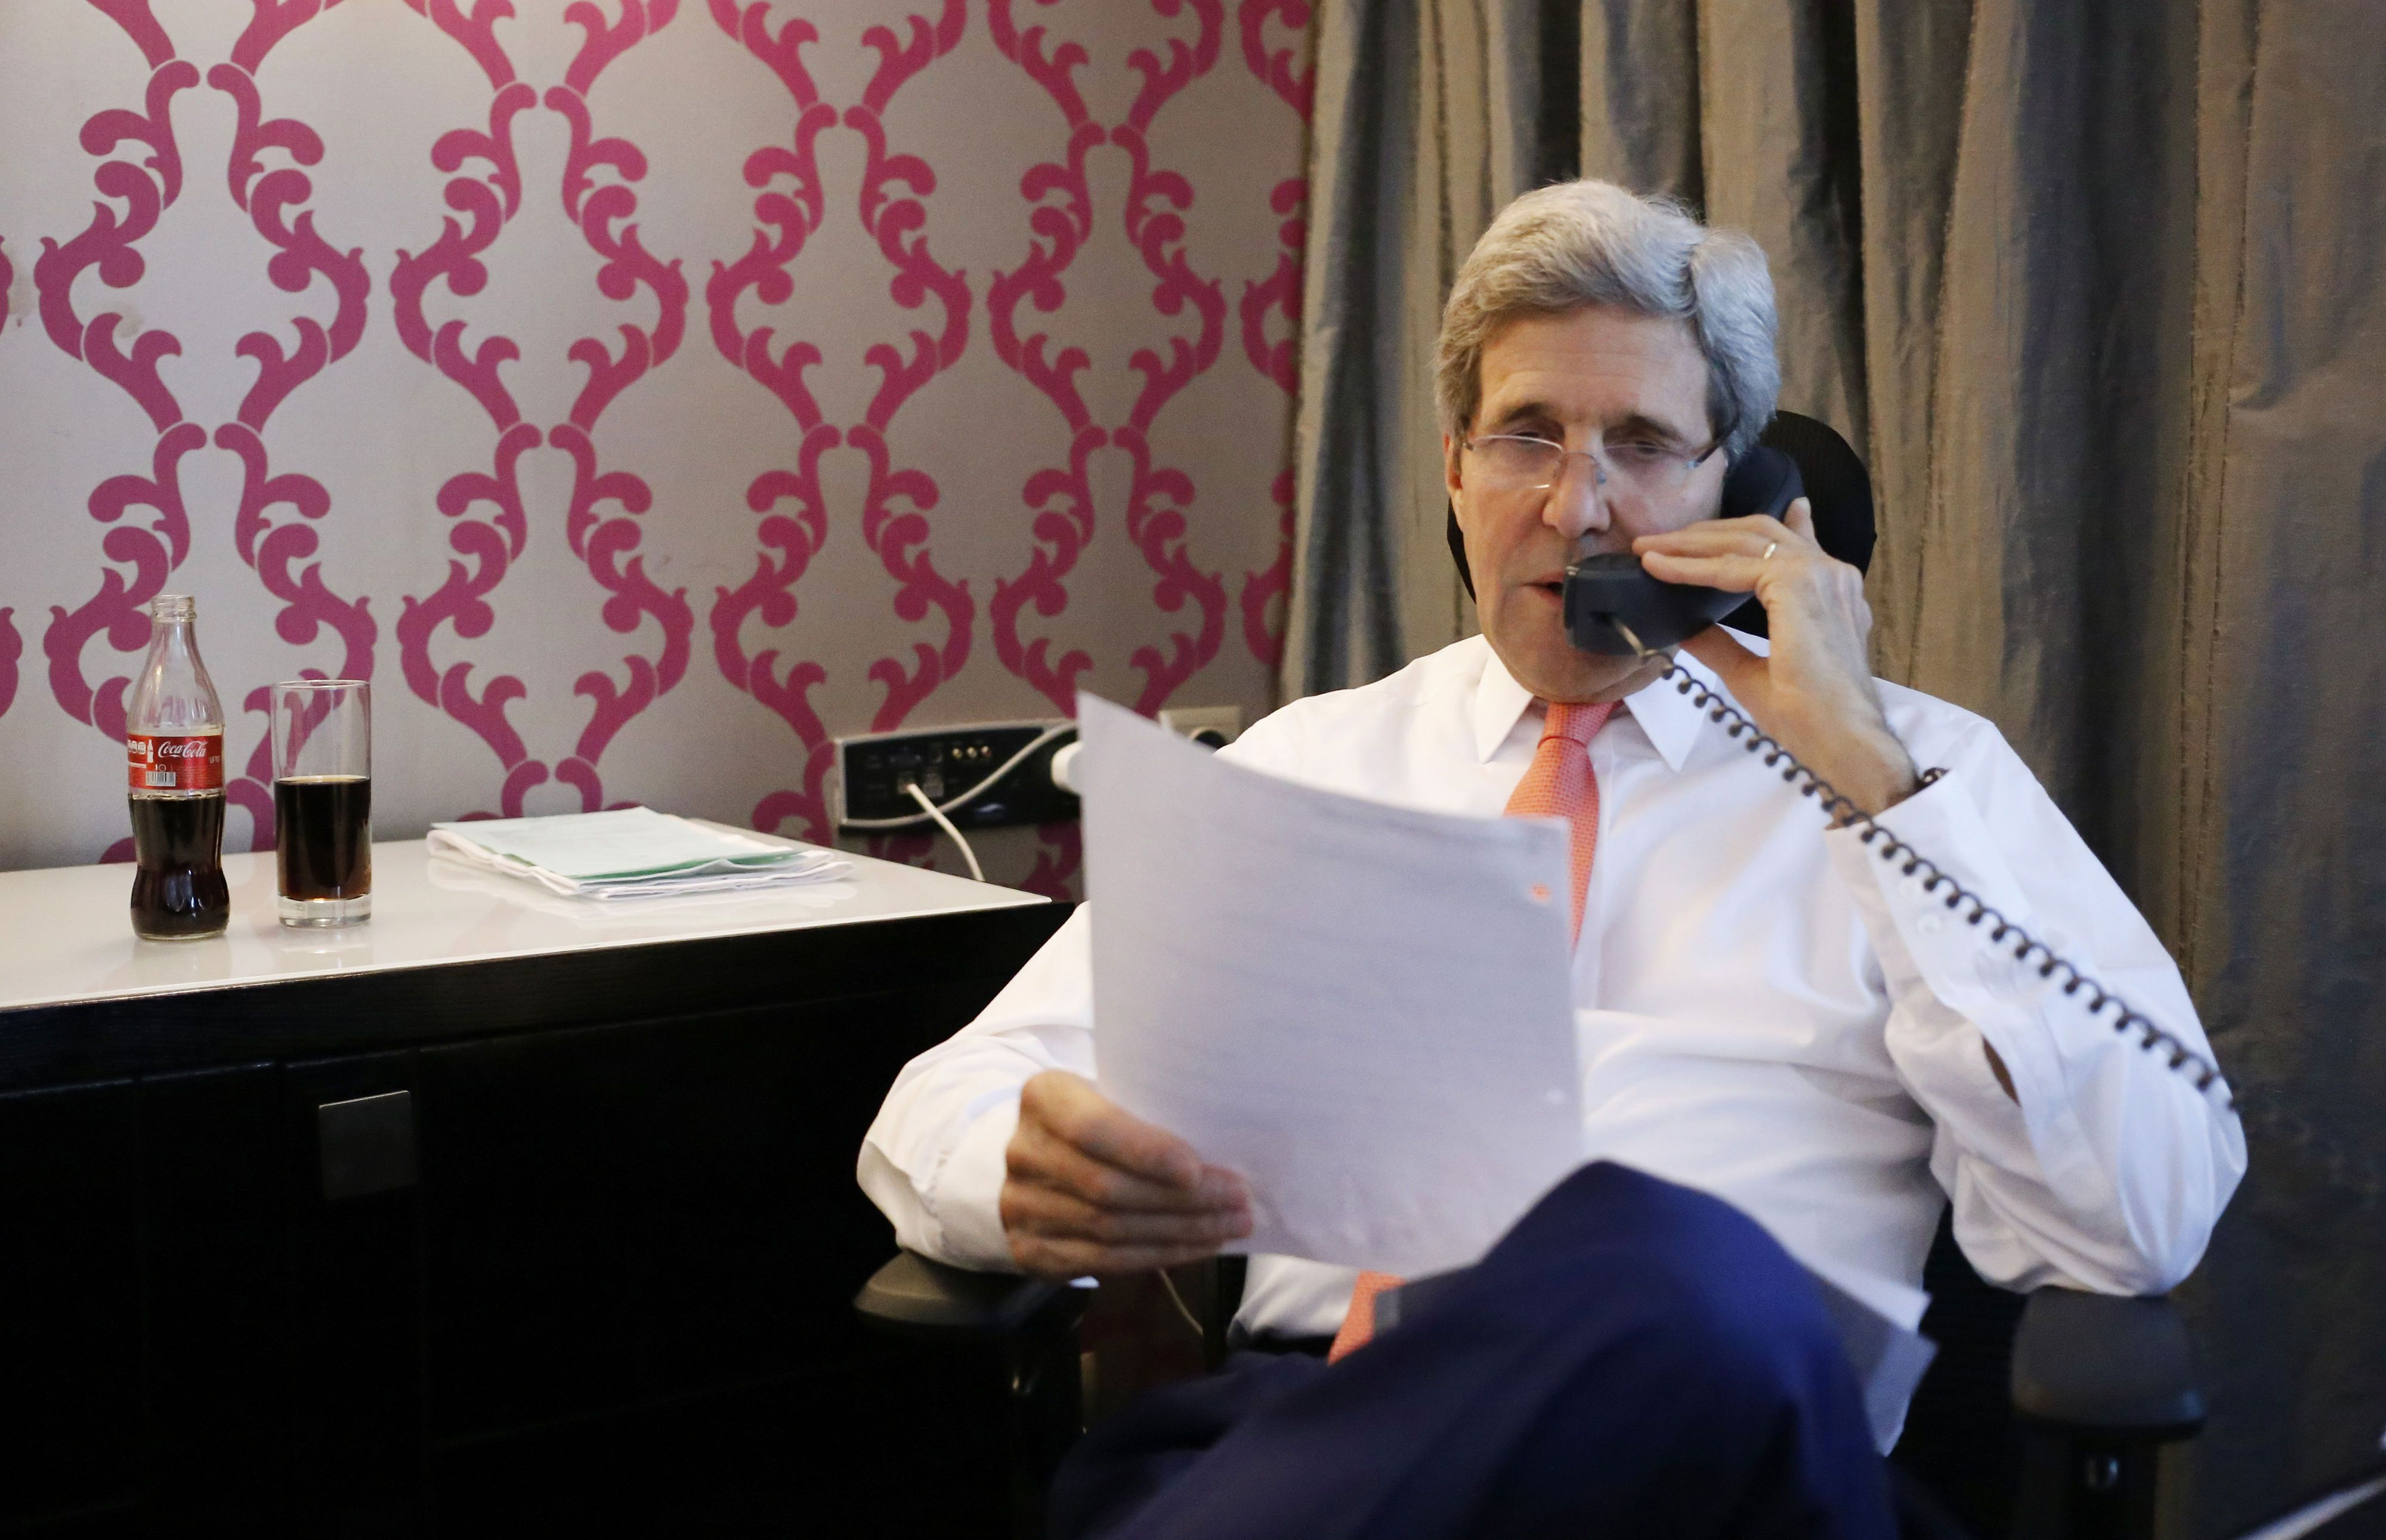 Kerry speaks with Netanyahu